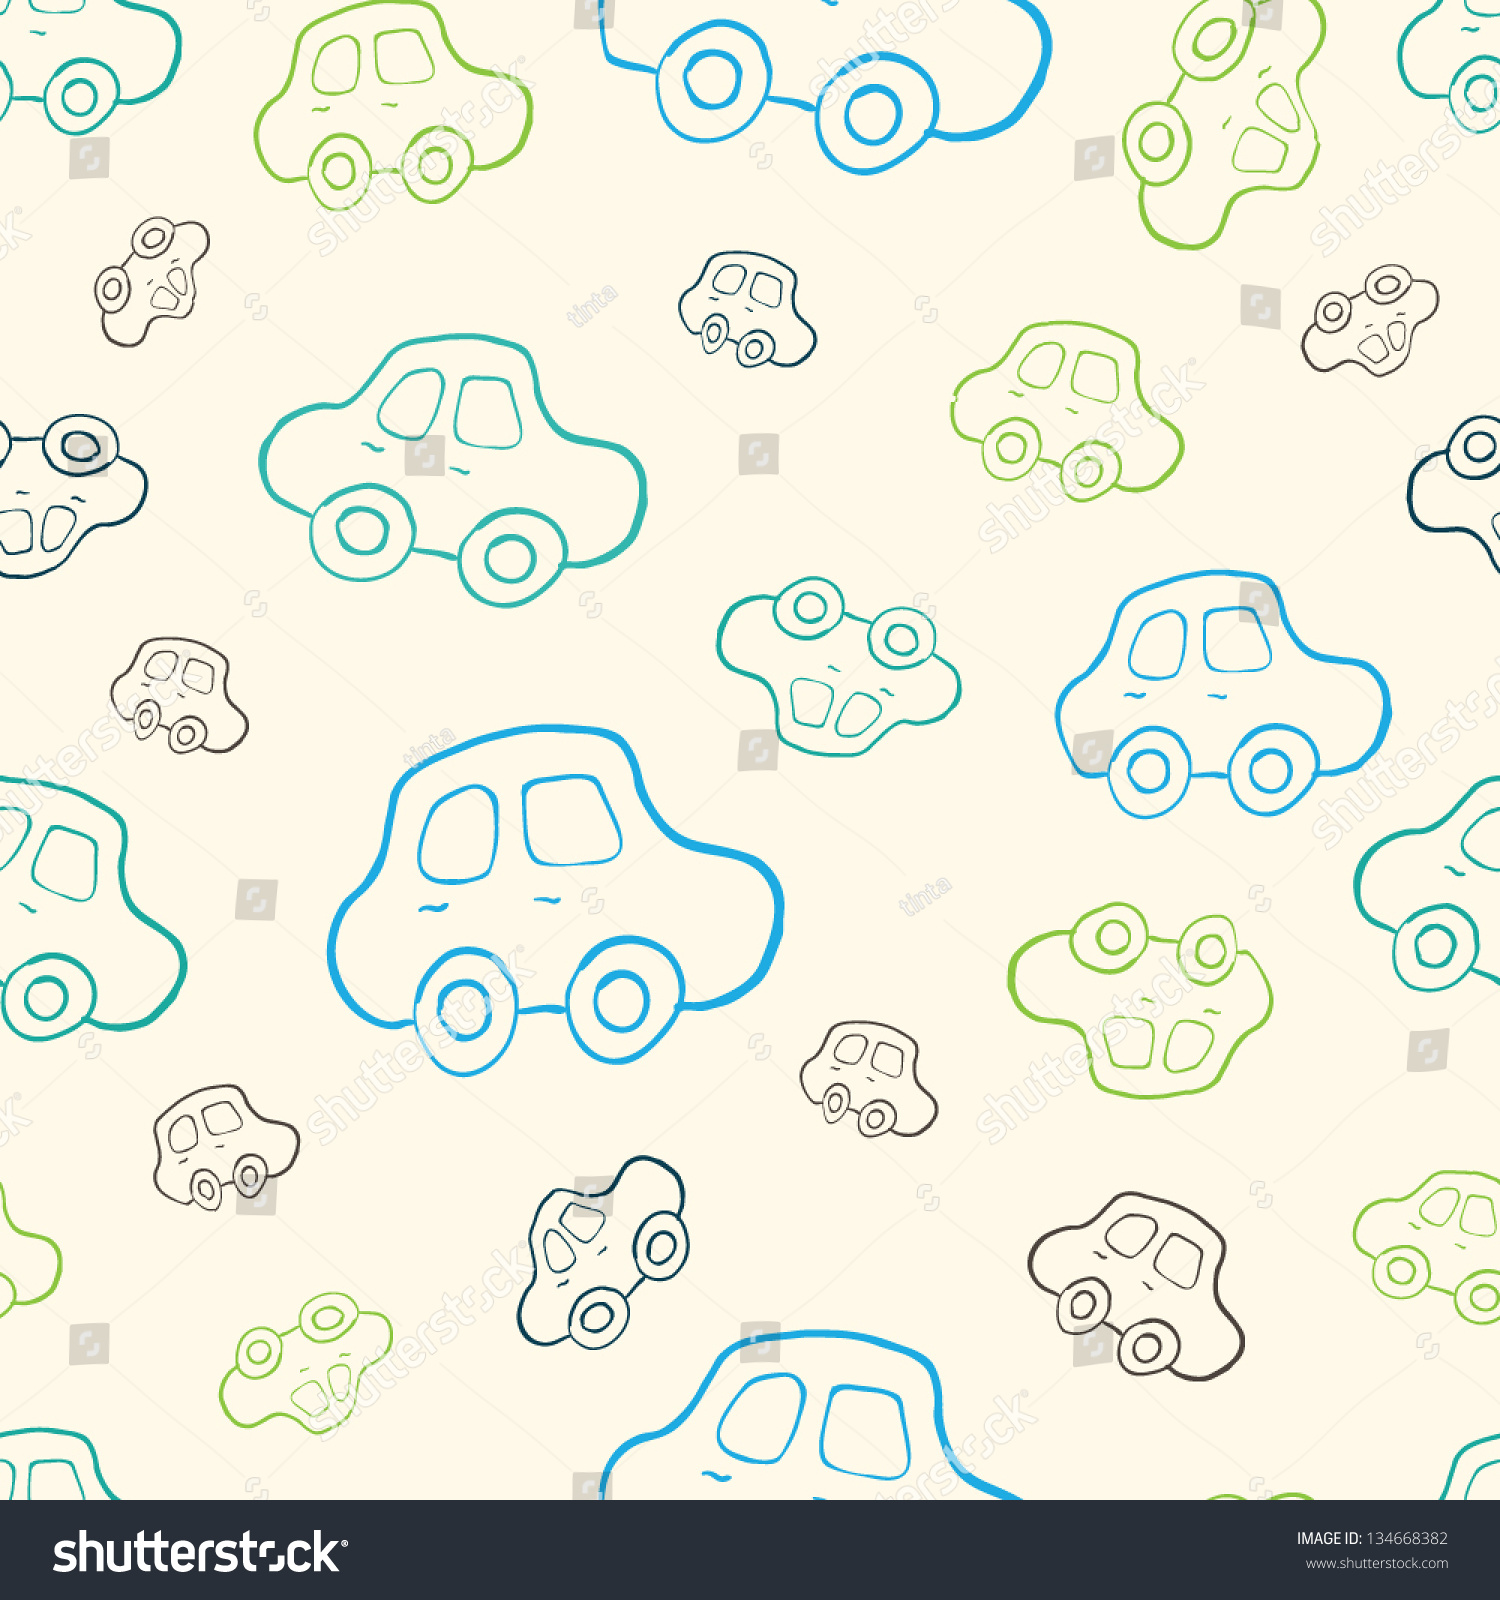 Baby boy background wallpaper baby boy background images baby boy - Seamless Baby Boy Pattern In Vector Background Boyish Wallpaper Pattern With Hand Drawn